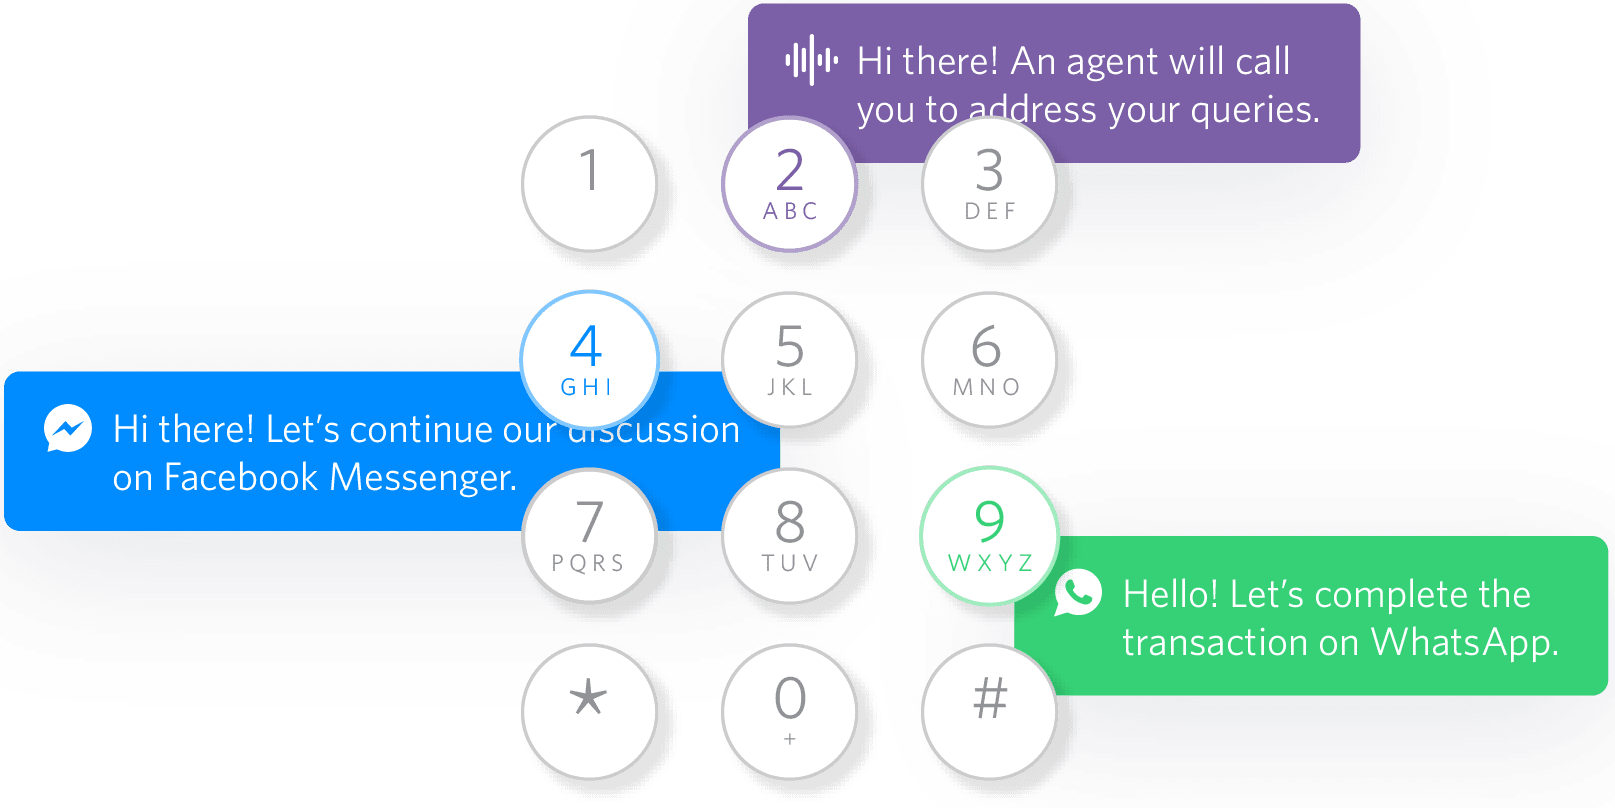 Twilio IVR | Build an intelligent IVR system to support